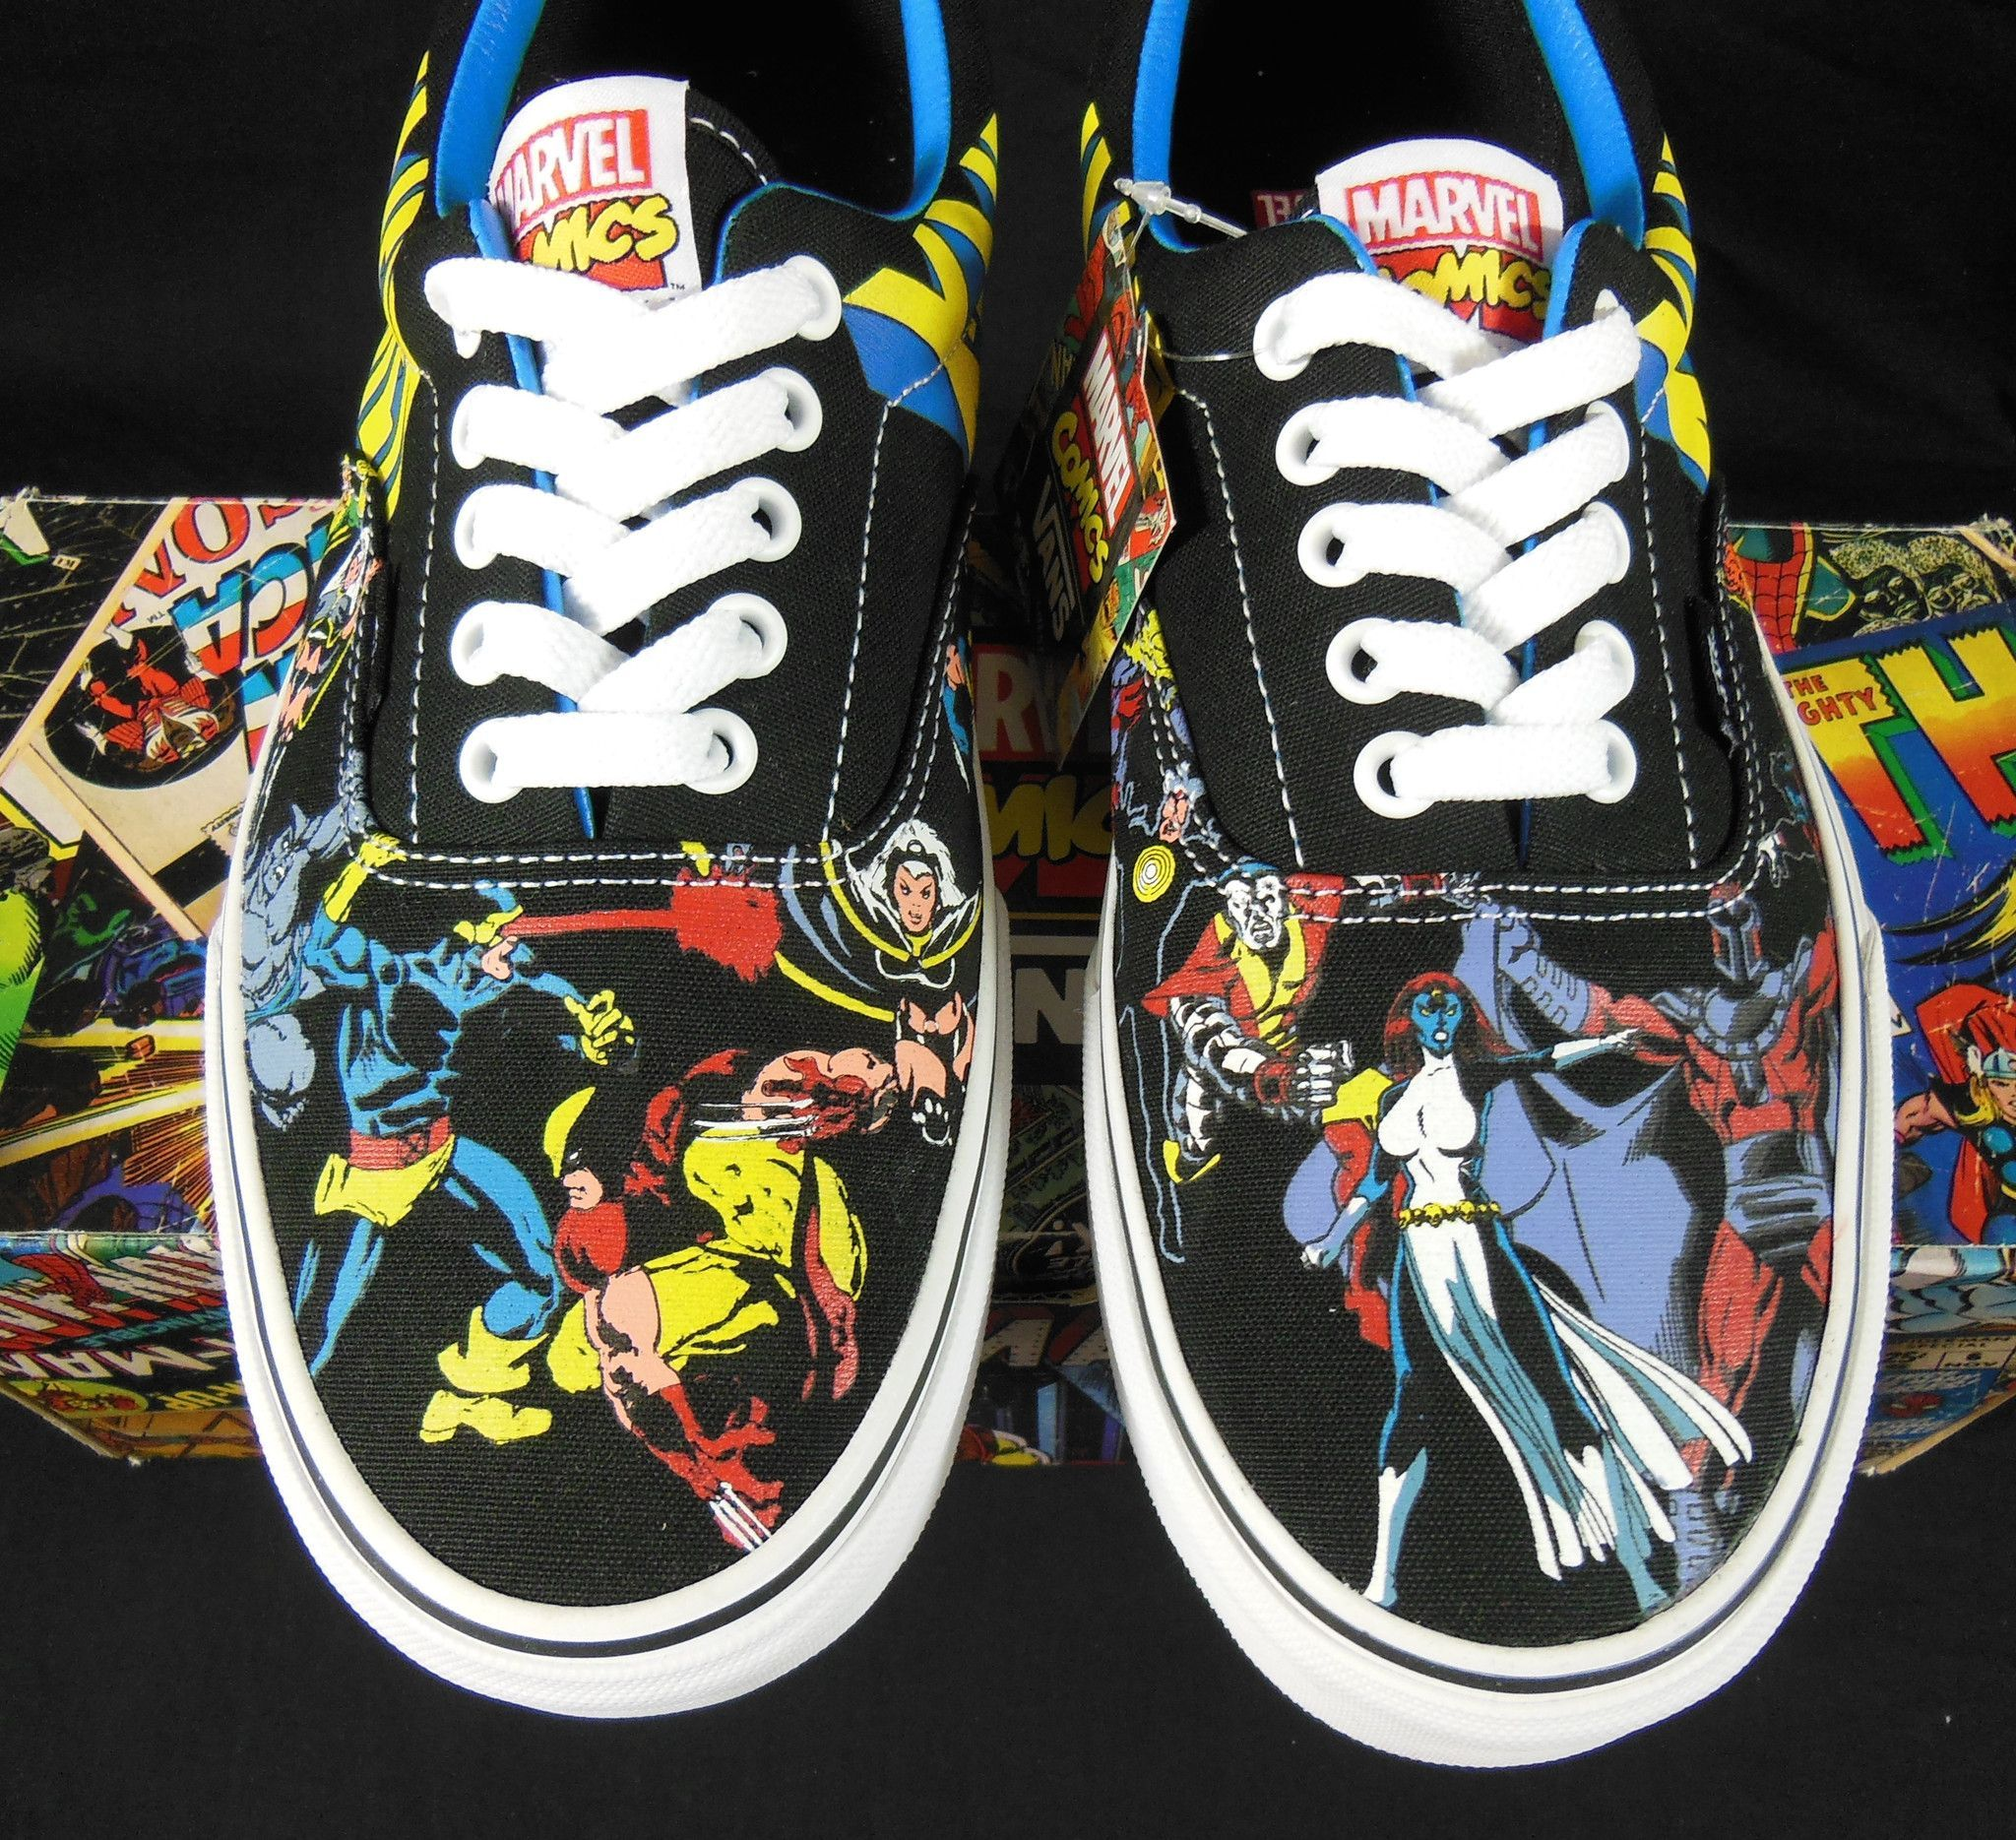 8916bbacf9 Vans X-Men Marvel Comics Kicks   Sneakers